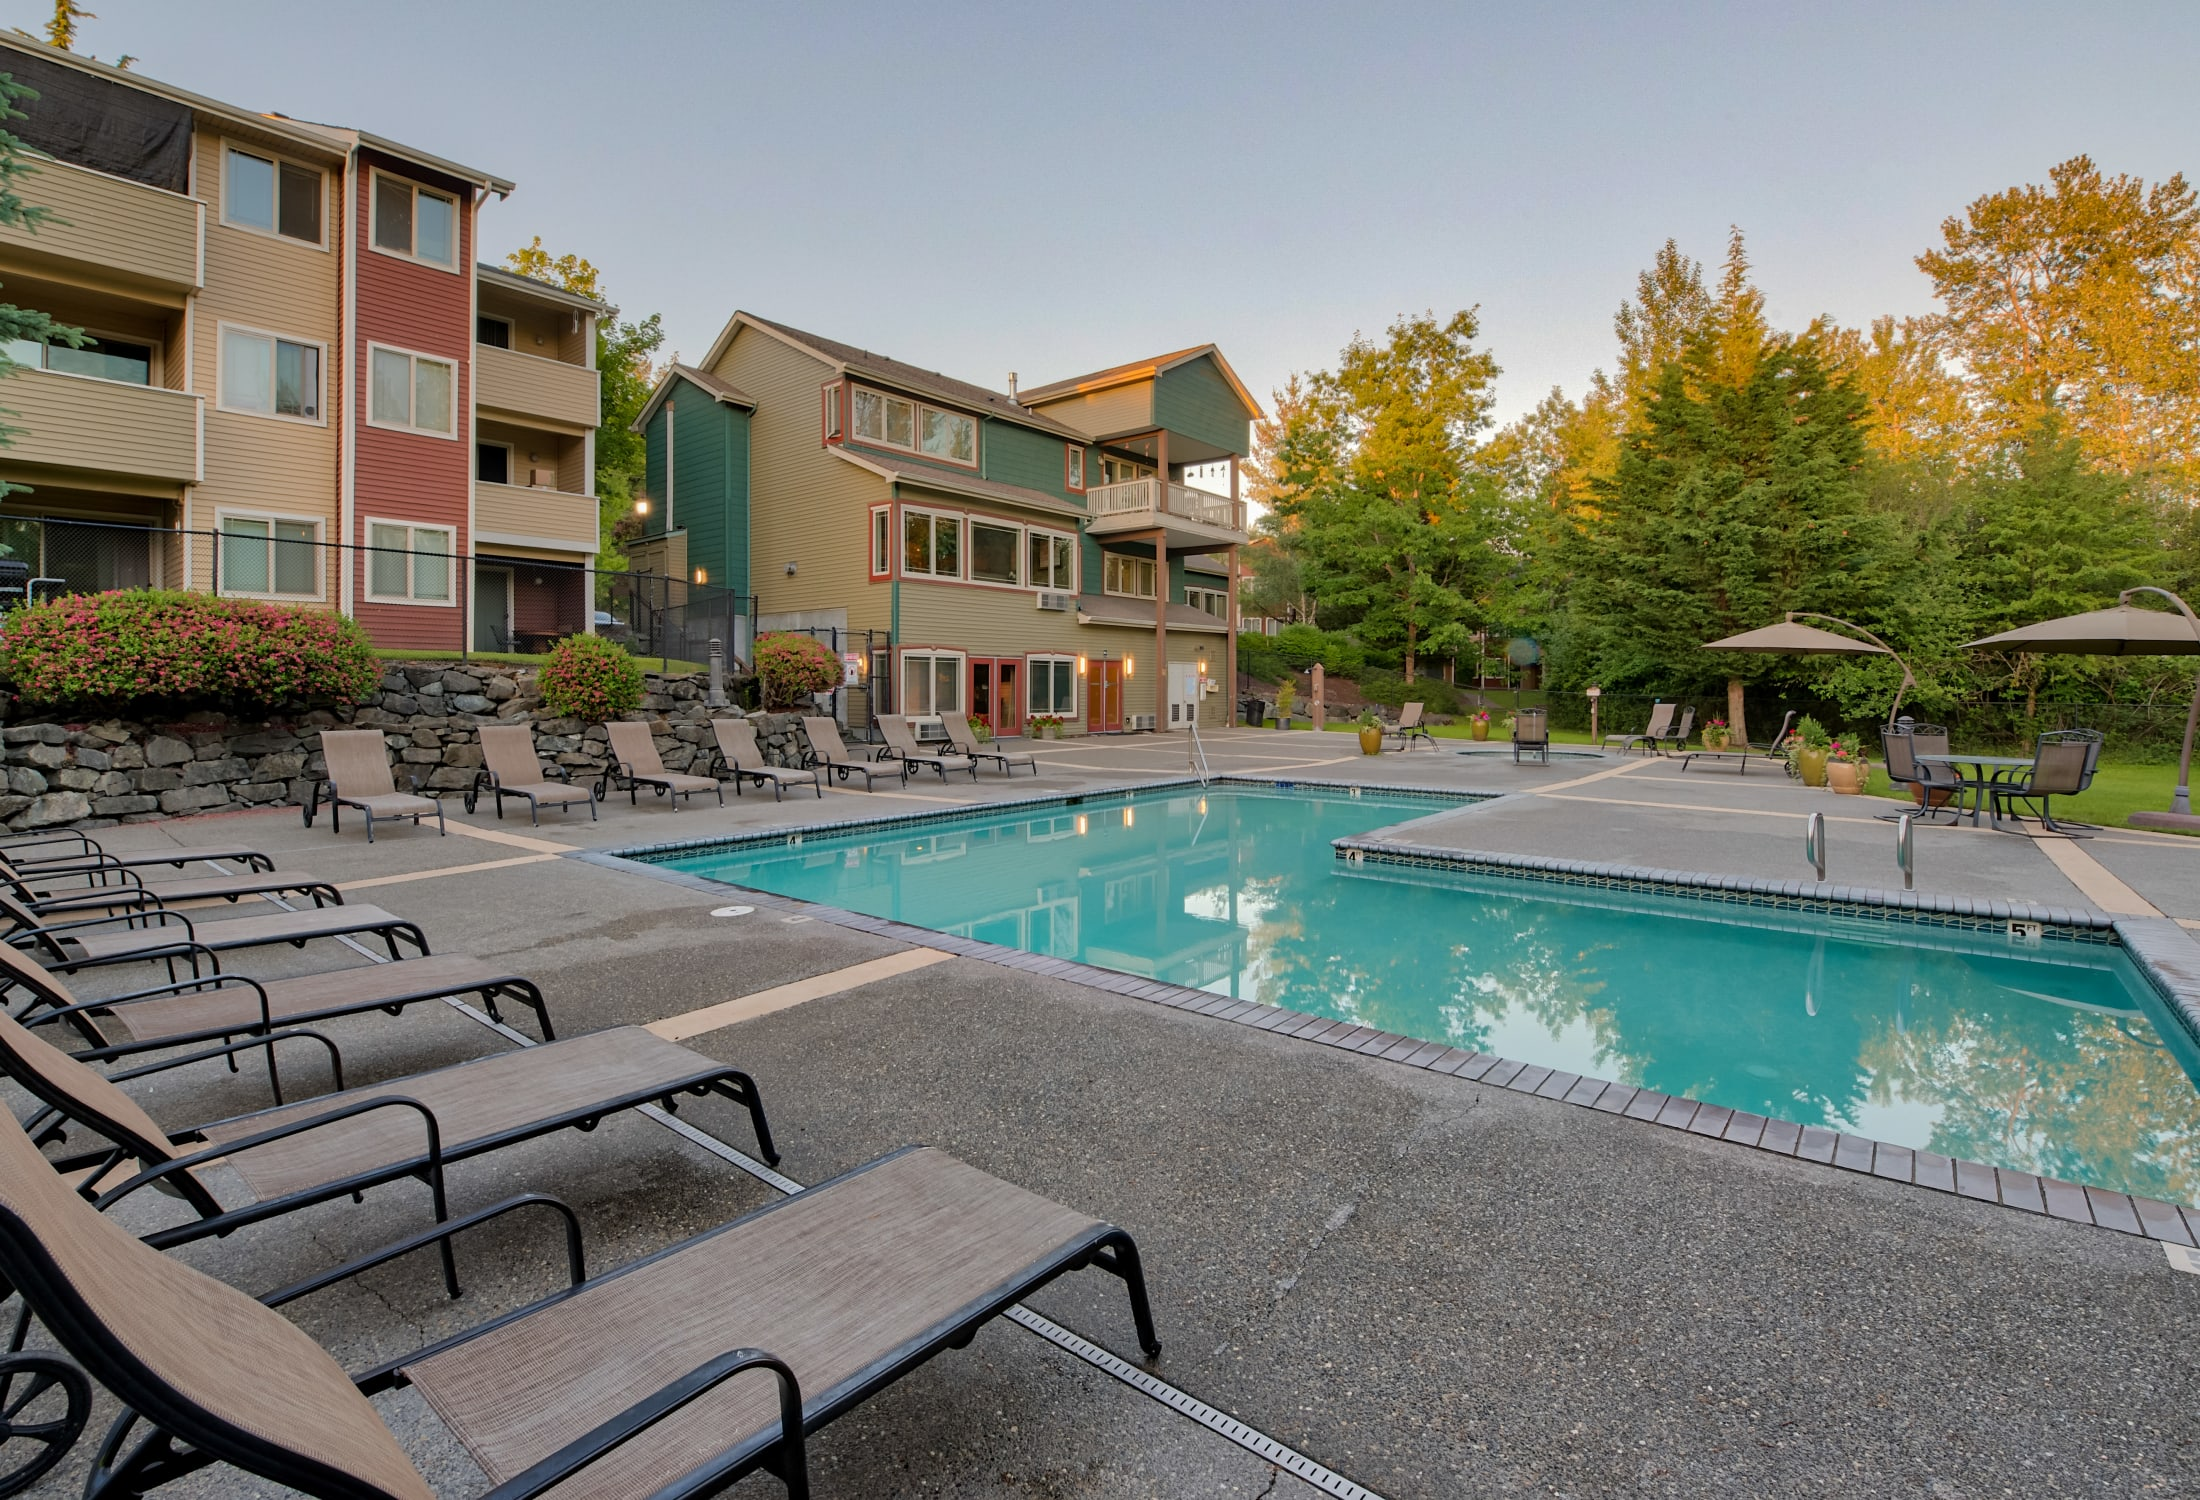 Aravia Apartments offers Apartments with a Swimming Pool in Tacoma, WA